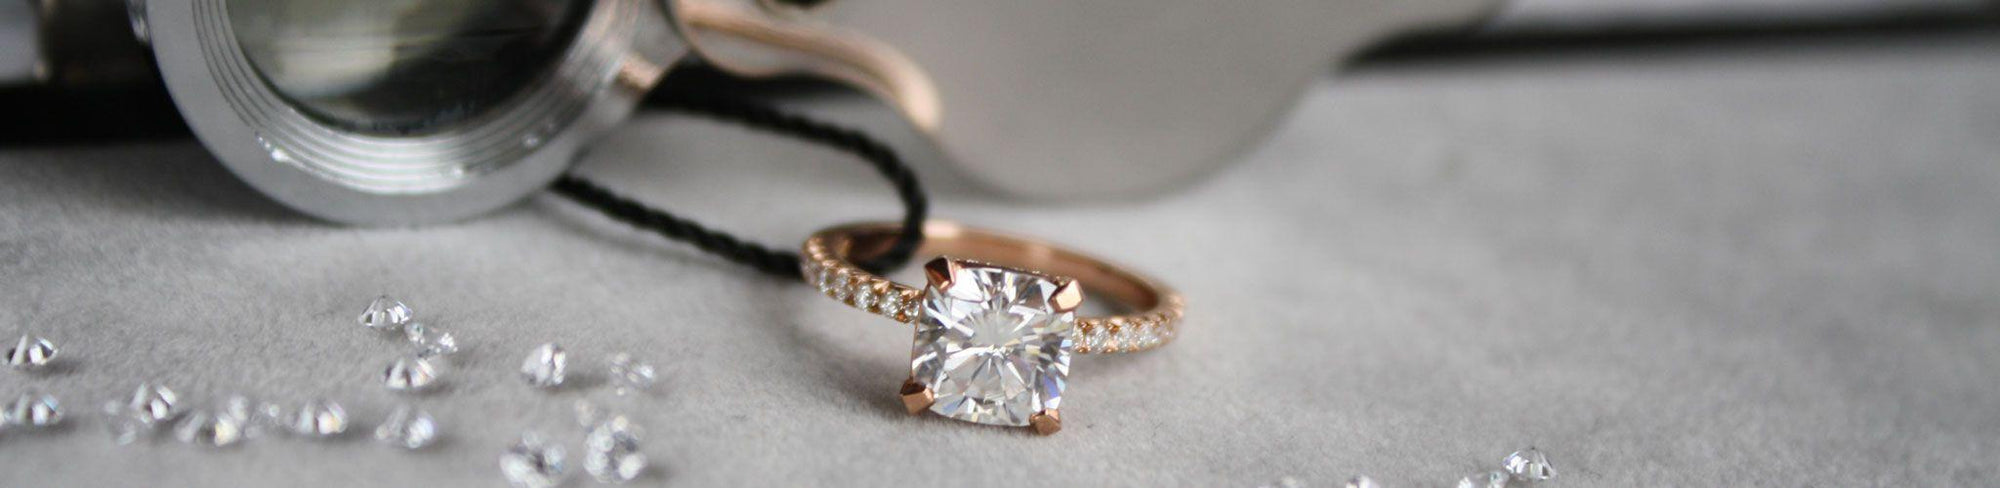 Quorri offers gold affordable man made diamond engagement rings in Canada